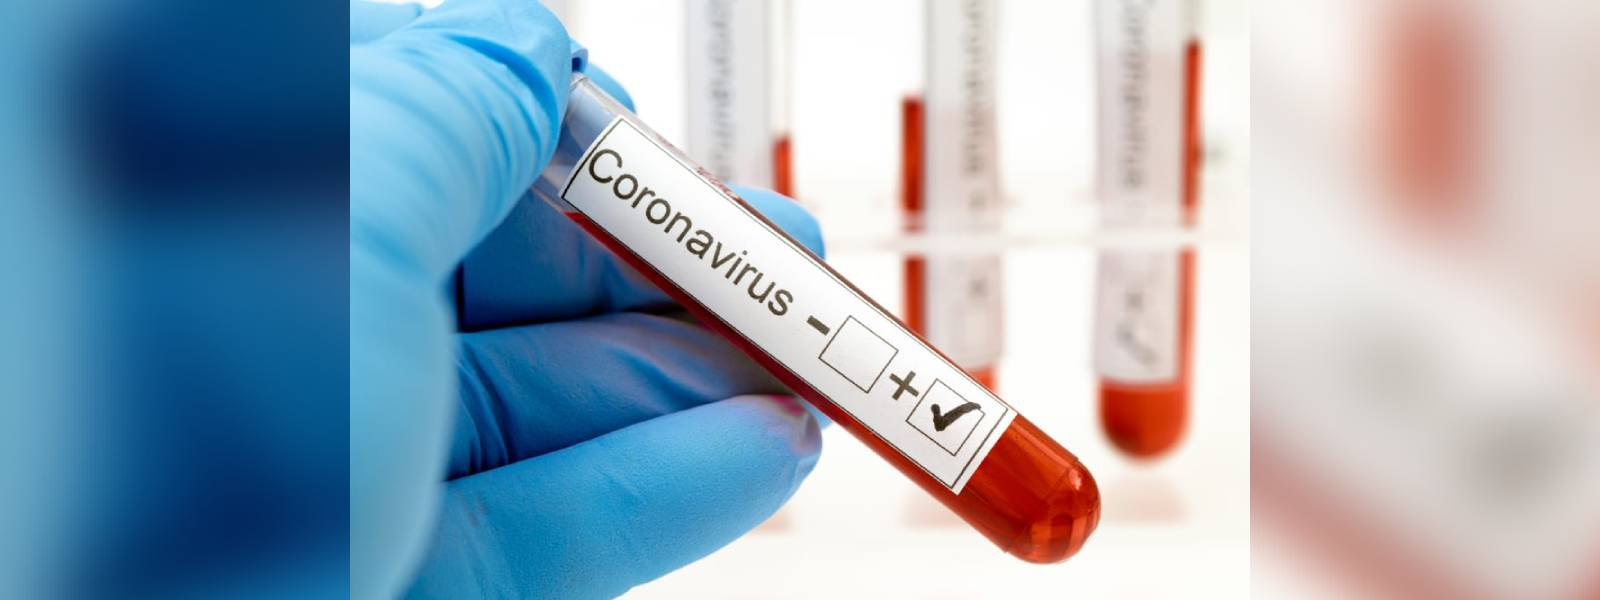 Four private hospitals to conduct testing for COVID-19